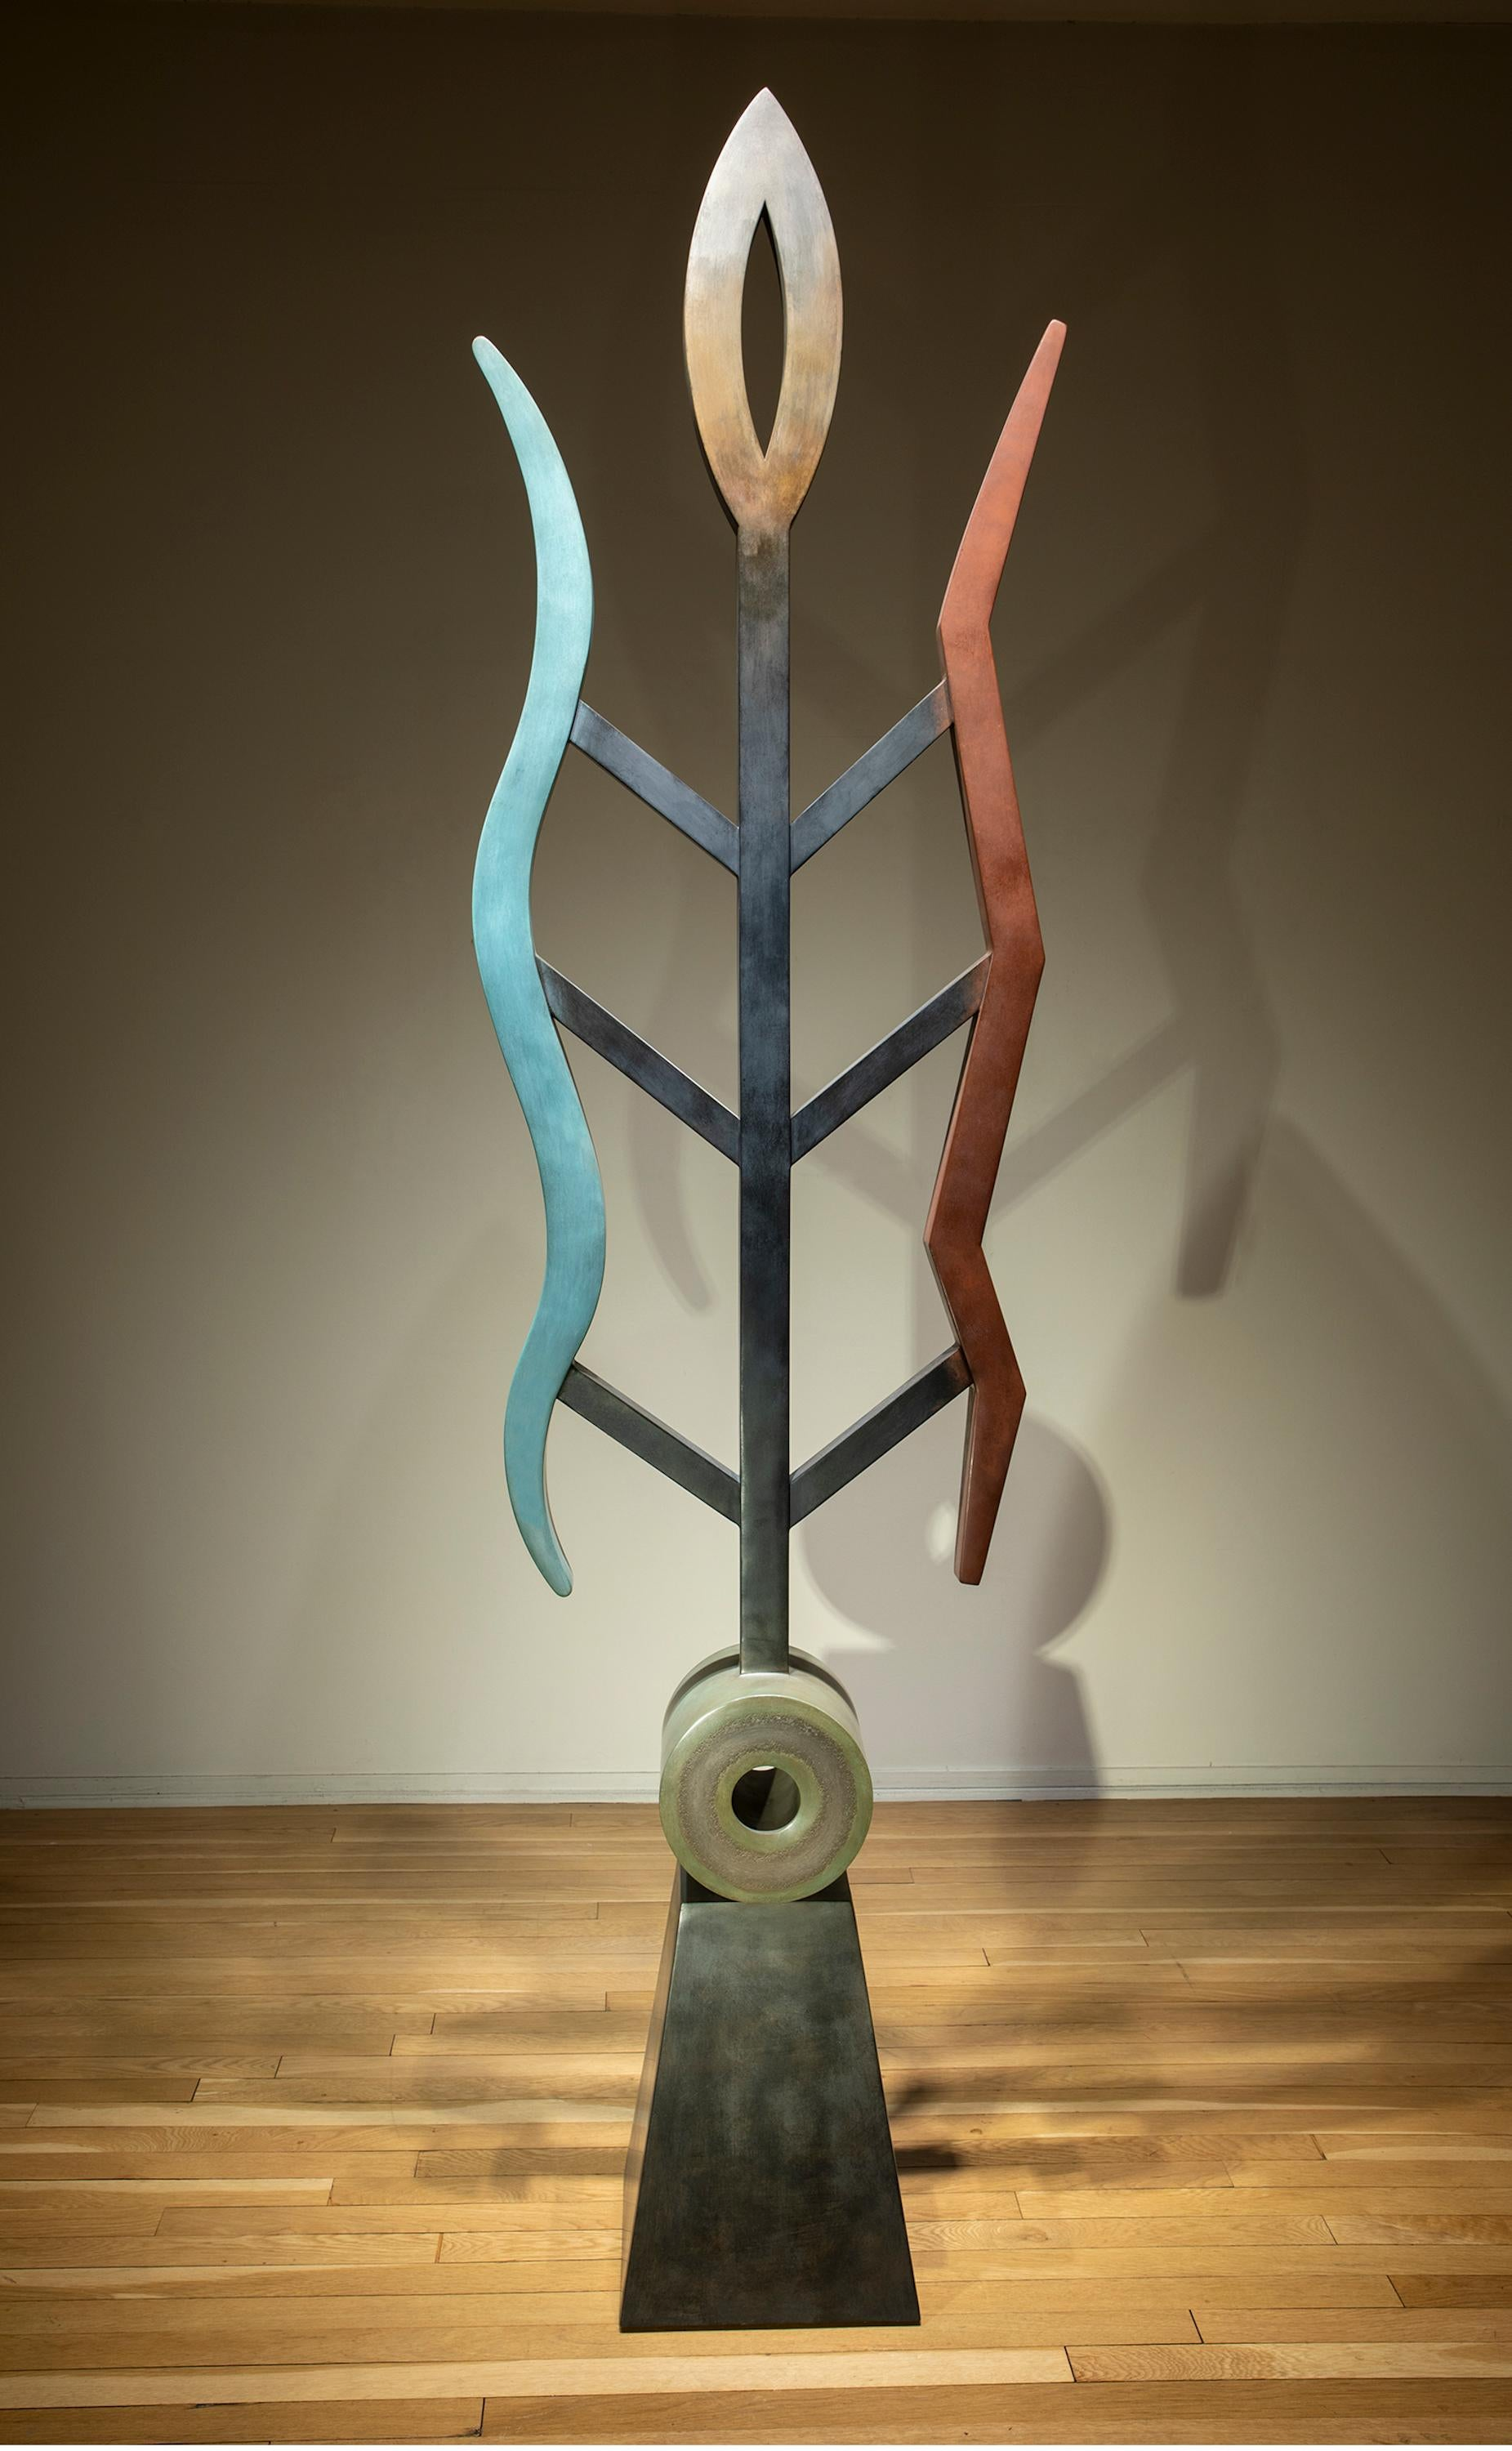 Fire and Rain, abstract sculpture, copper, unique, geometric, blue red, brown